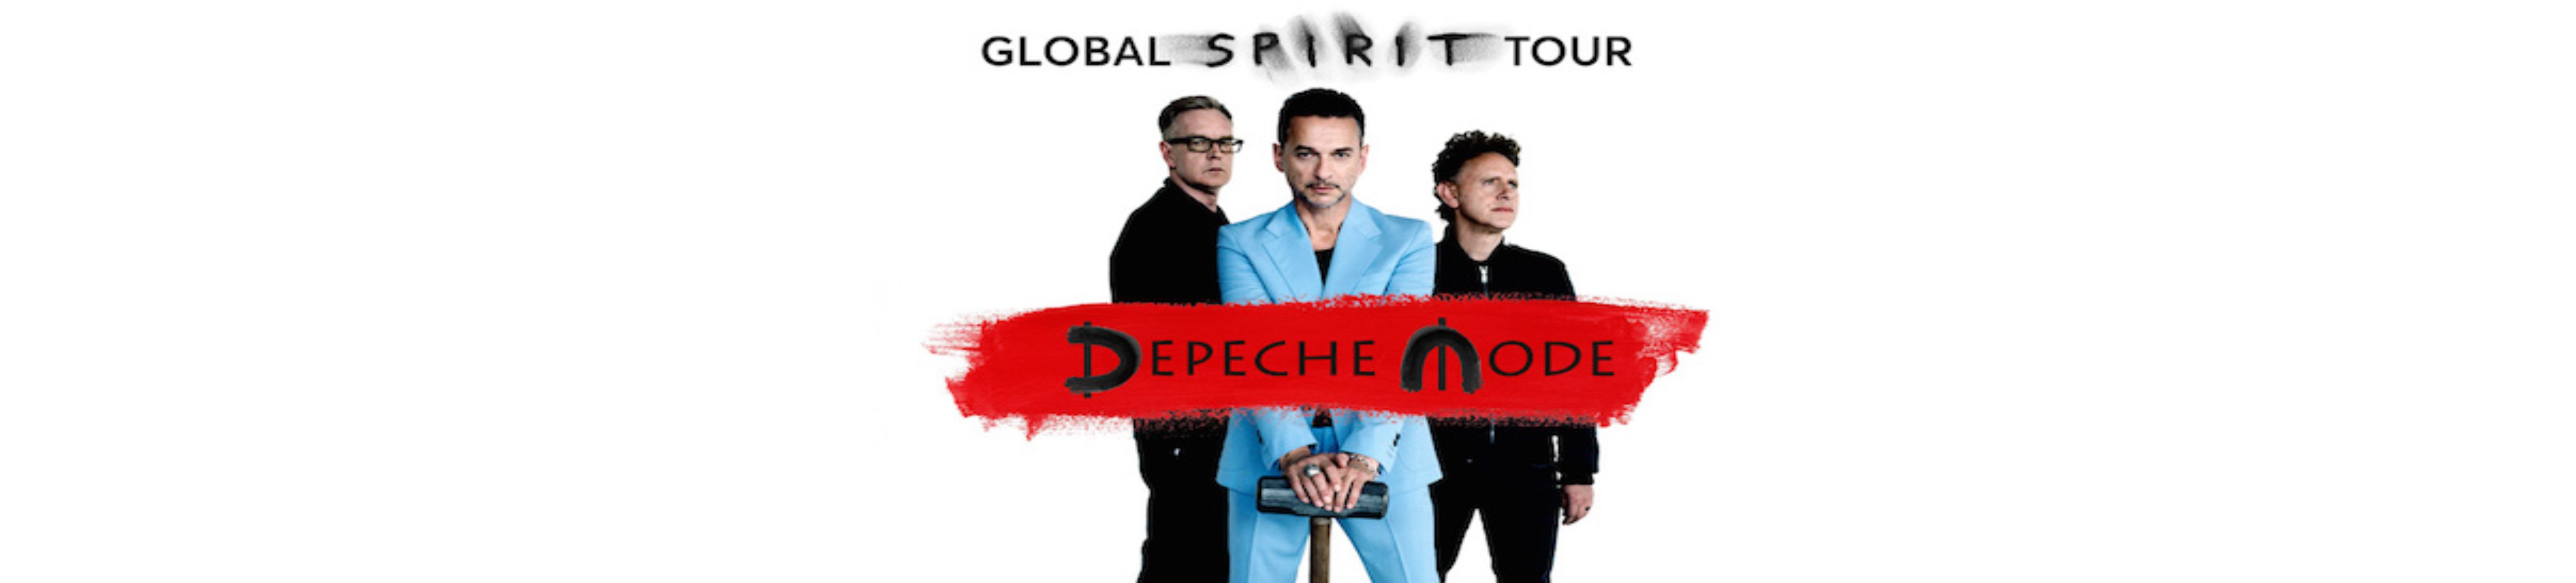 Depeche-Mode-Tour-2018-2